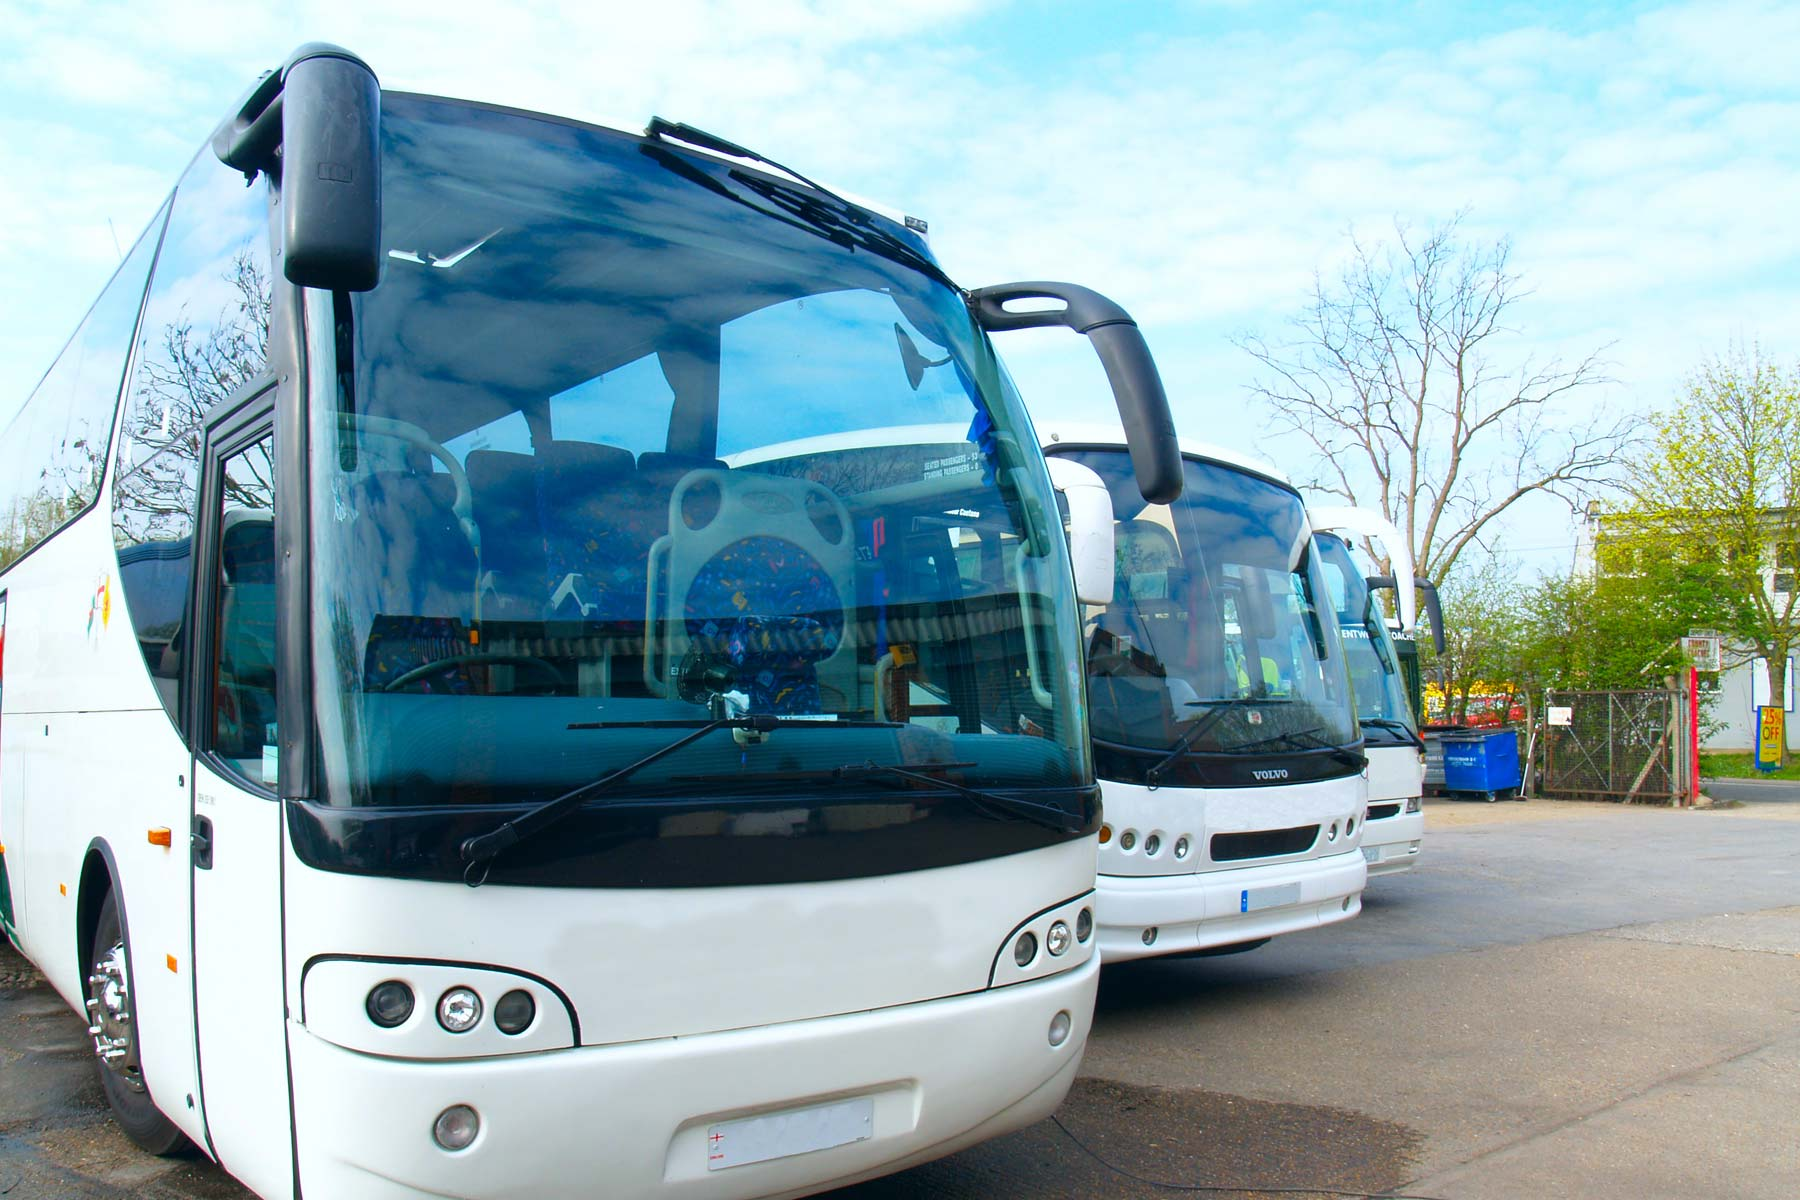 Coaches parked